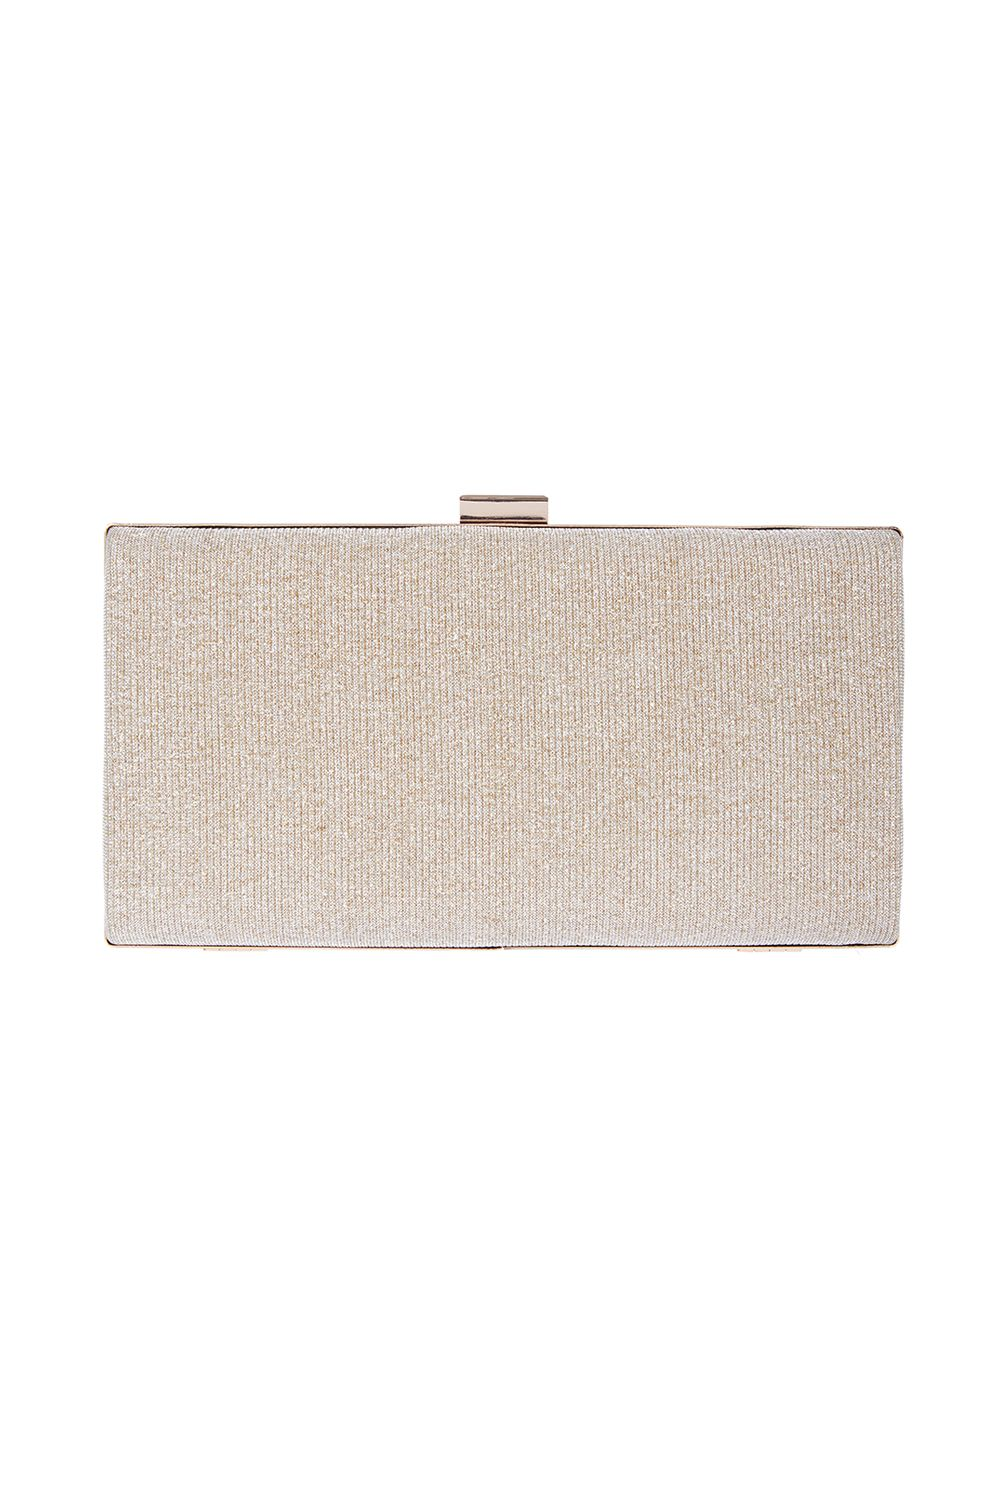 Coast Bethy Box Bag, Gold Silverlic